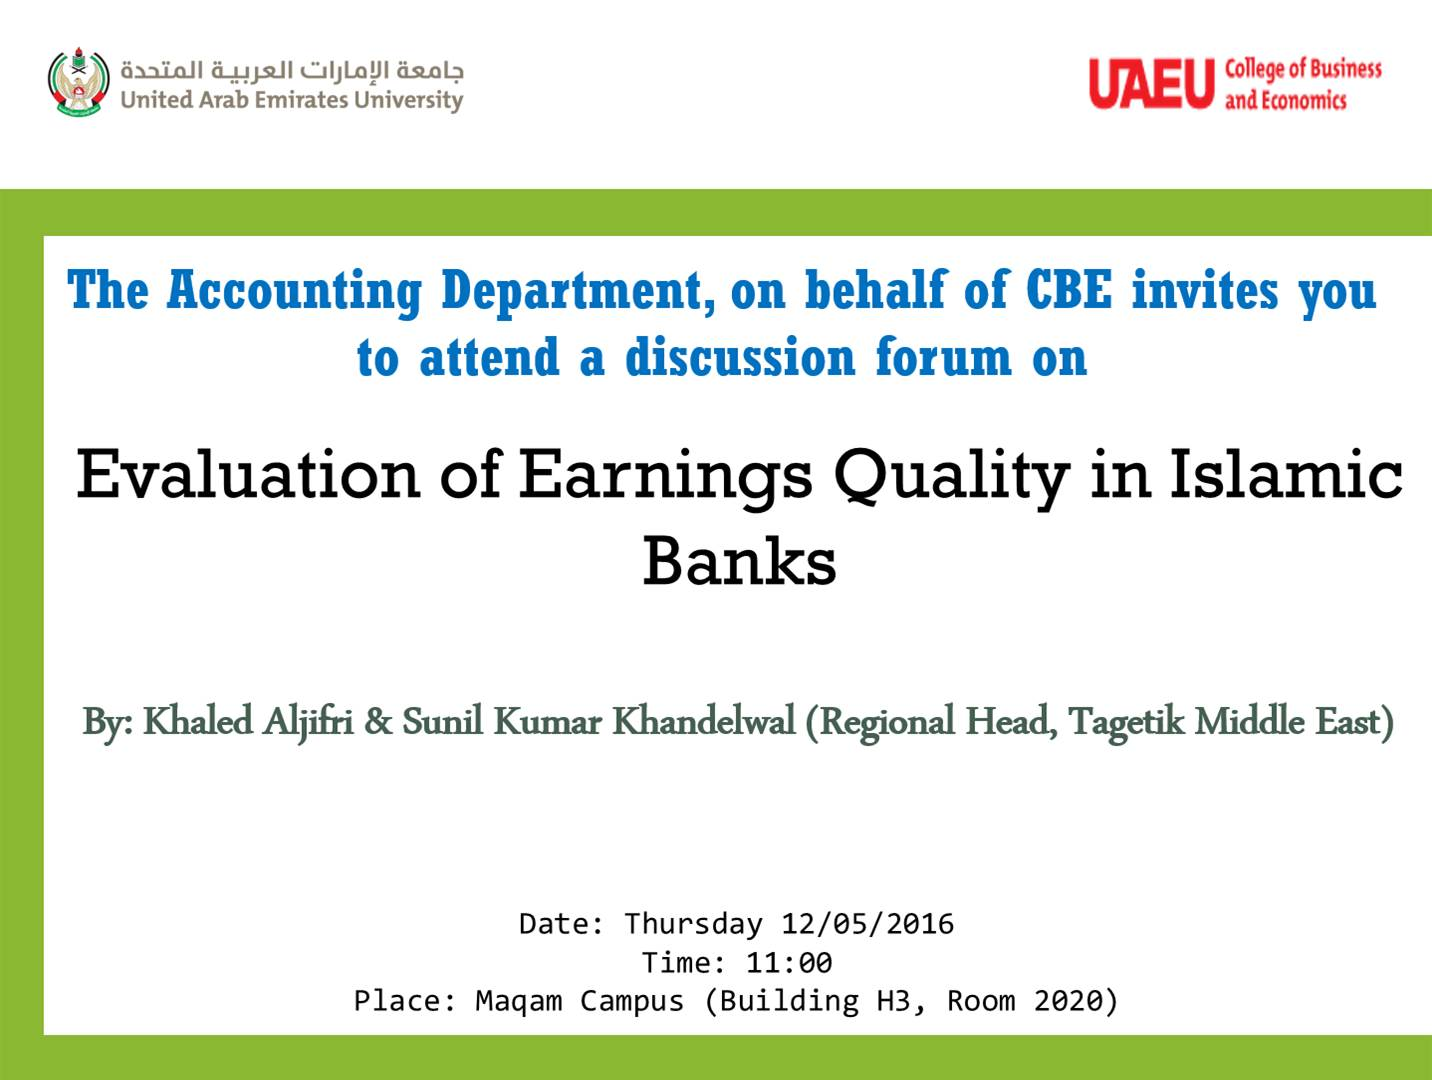 Evaluation of Earnings Quality in Islamic Banks